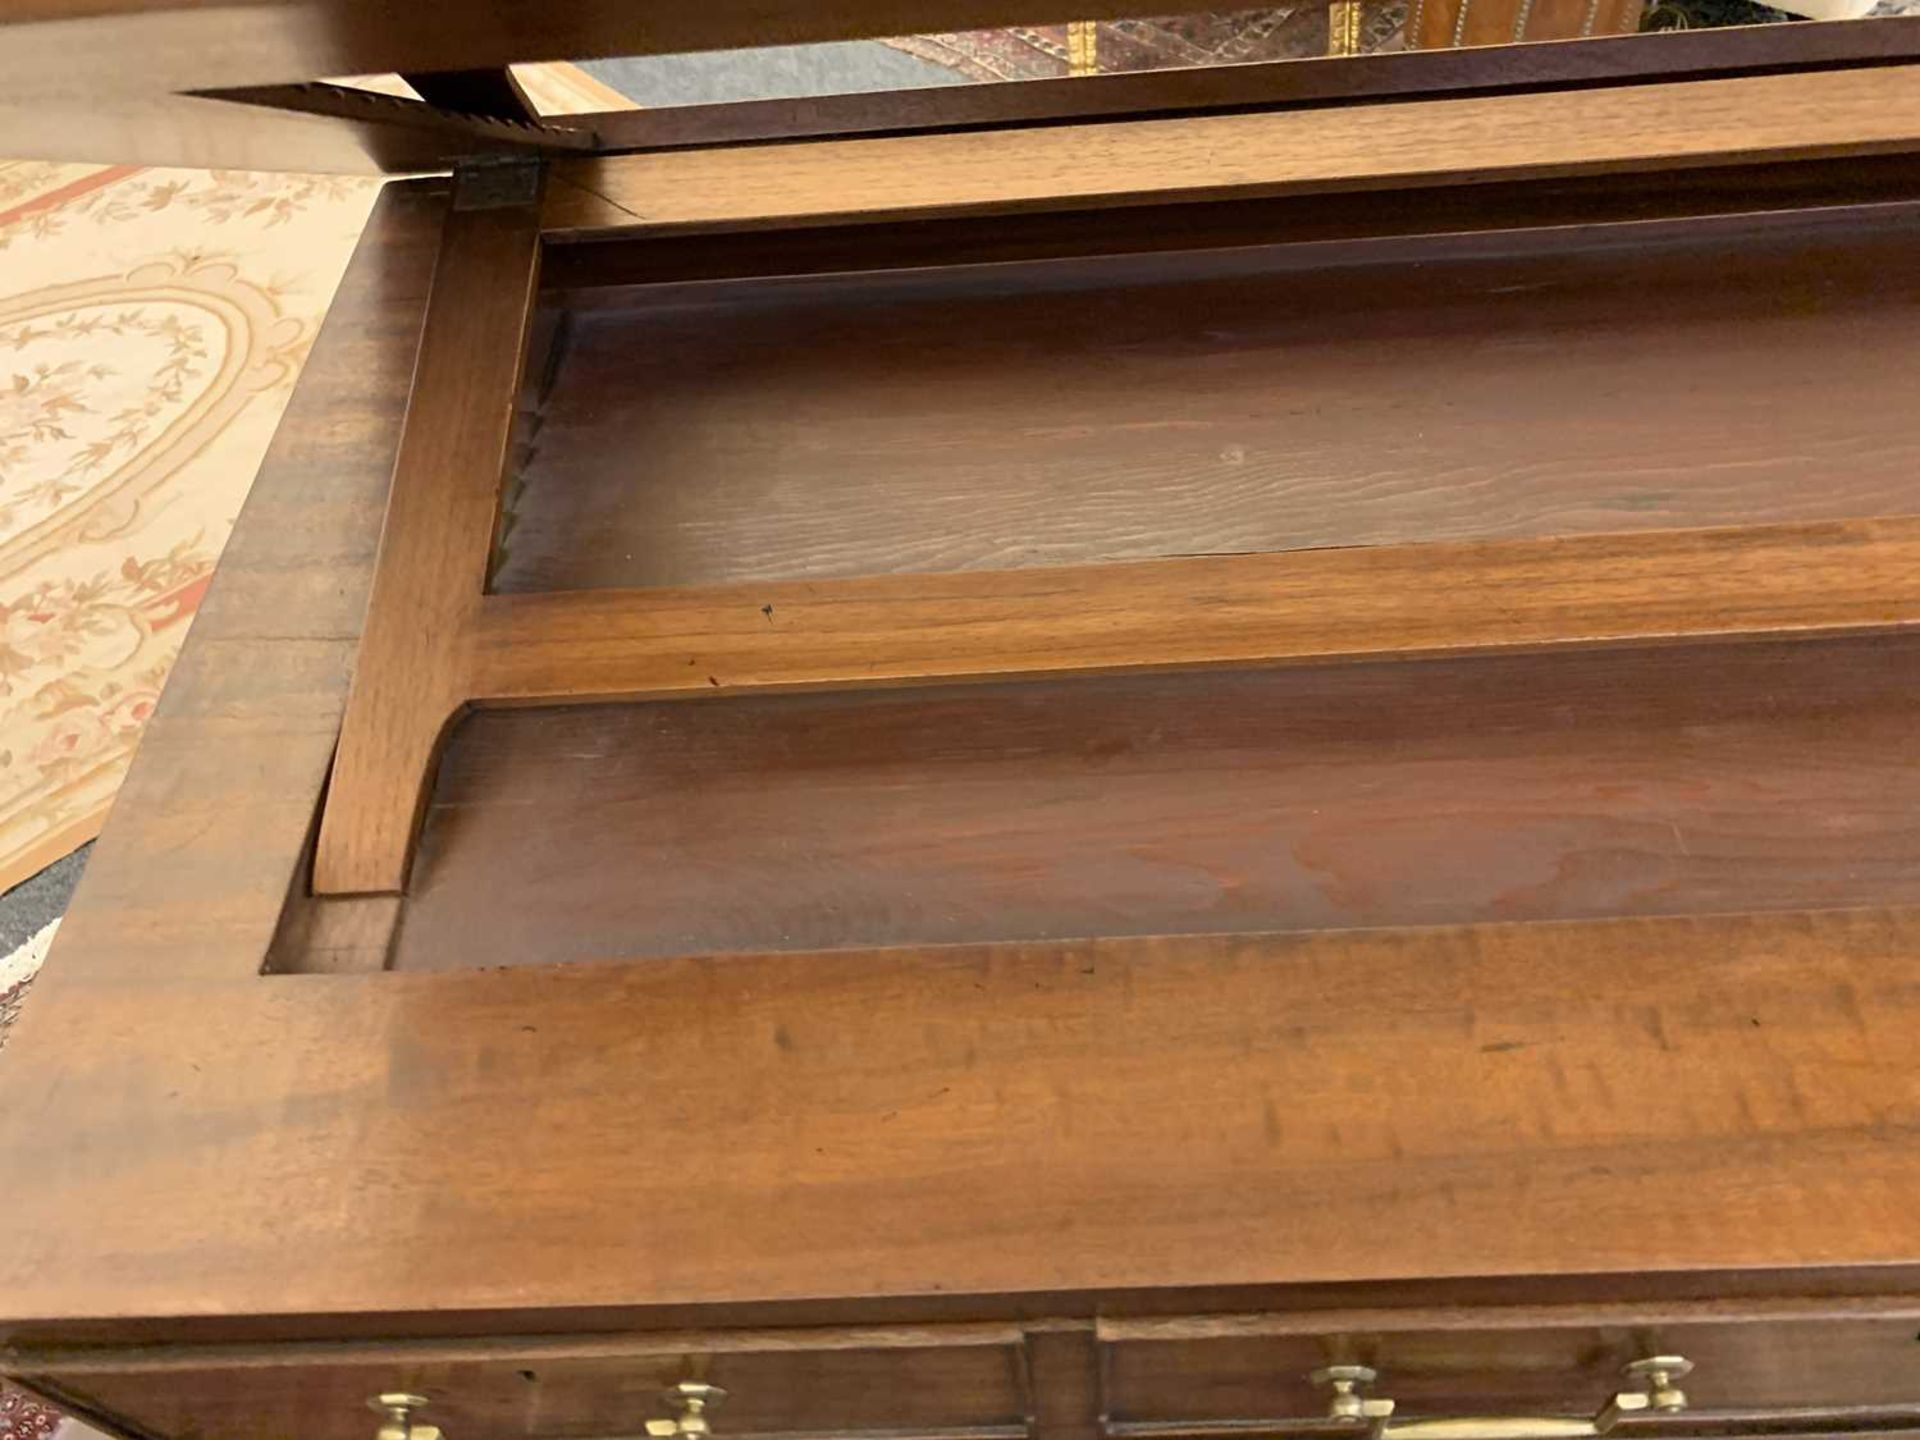 A George III mahogany architect's desk/secretaire, - Image 17 of 30